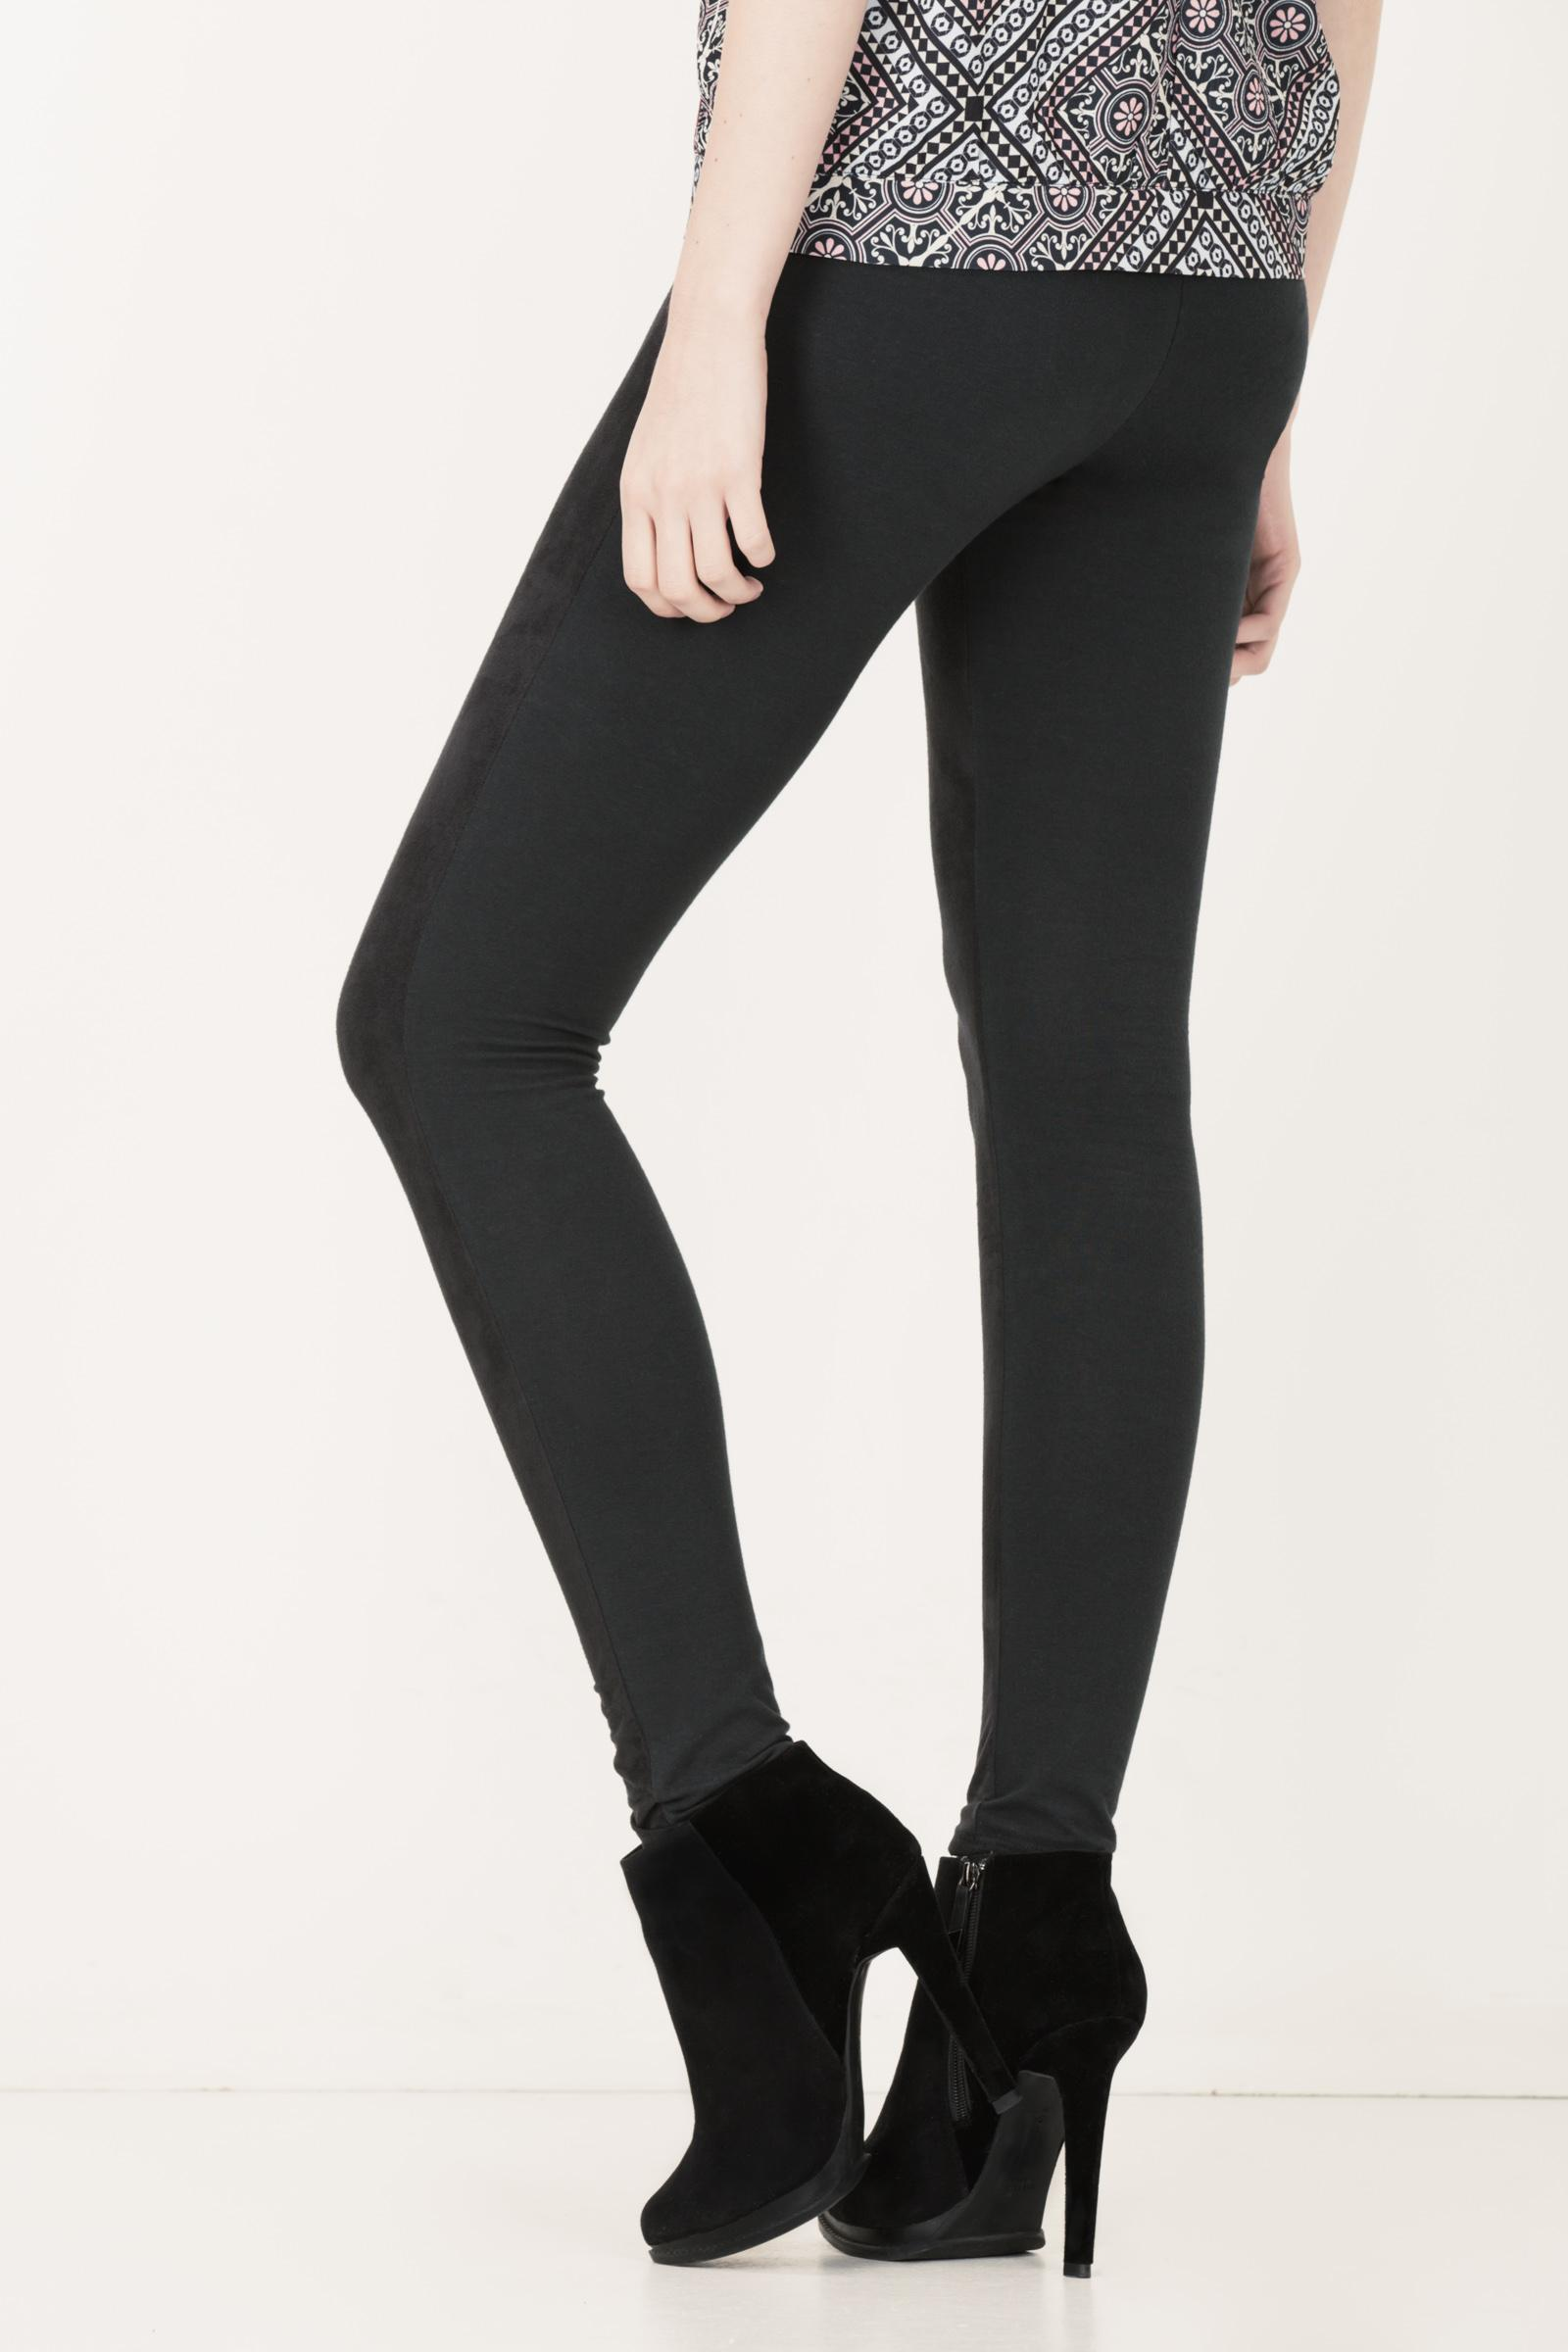 Glam-PANTALON LEGGINS KOAJ TALLY 3/16